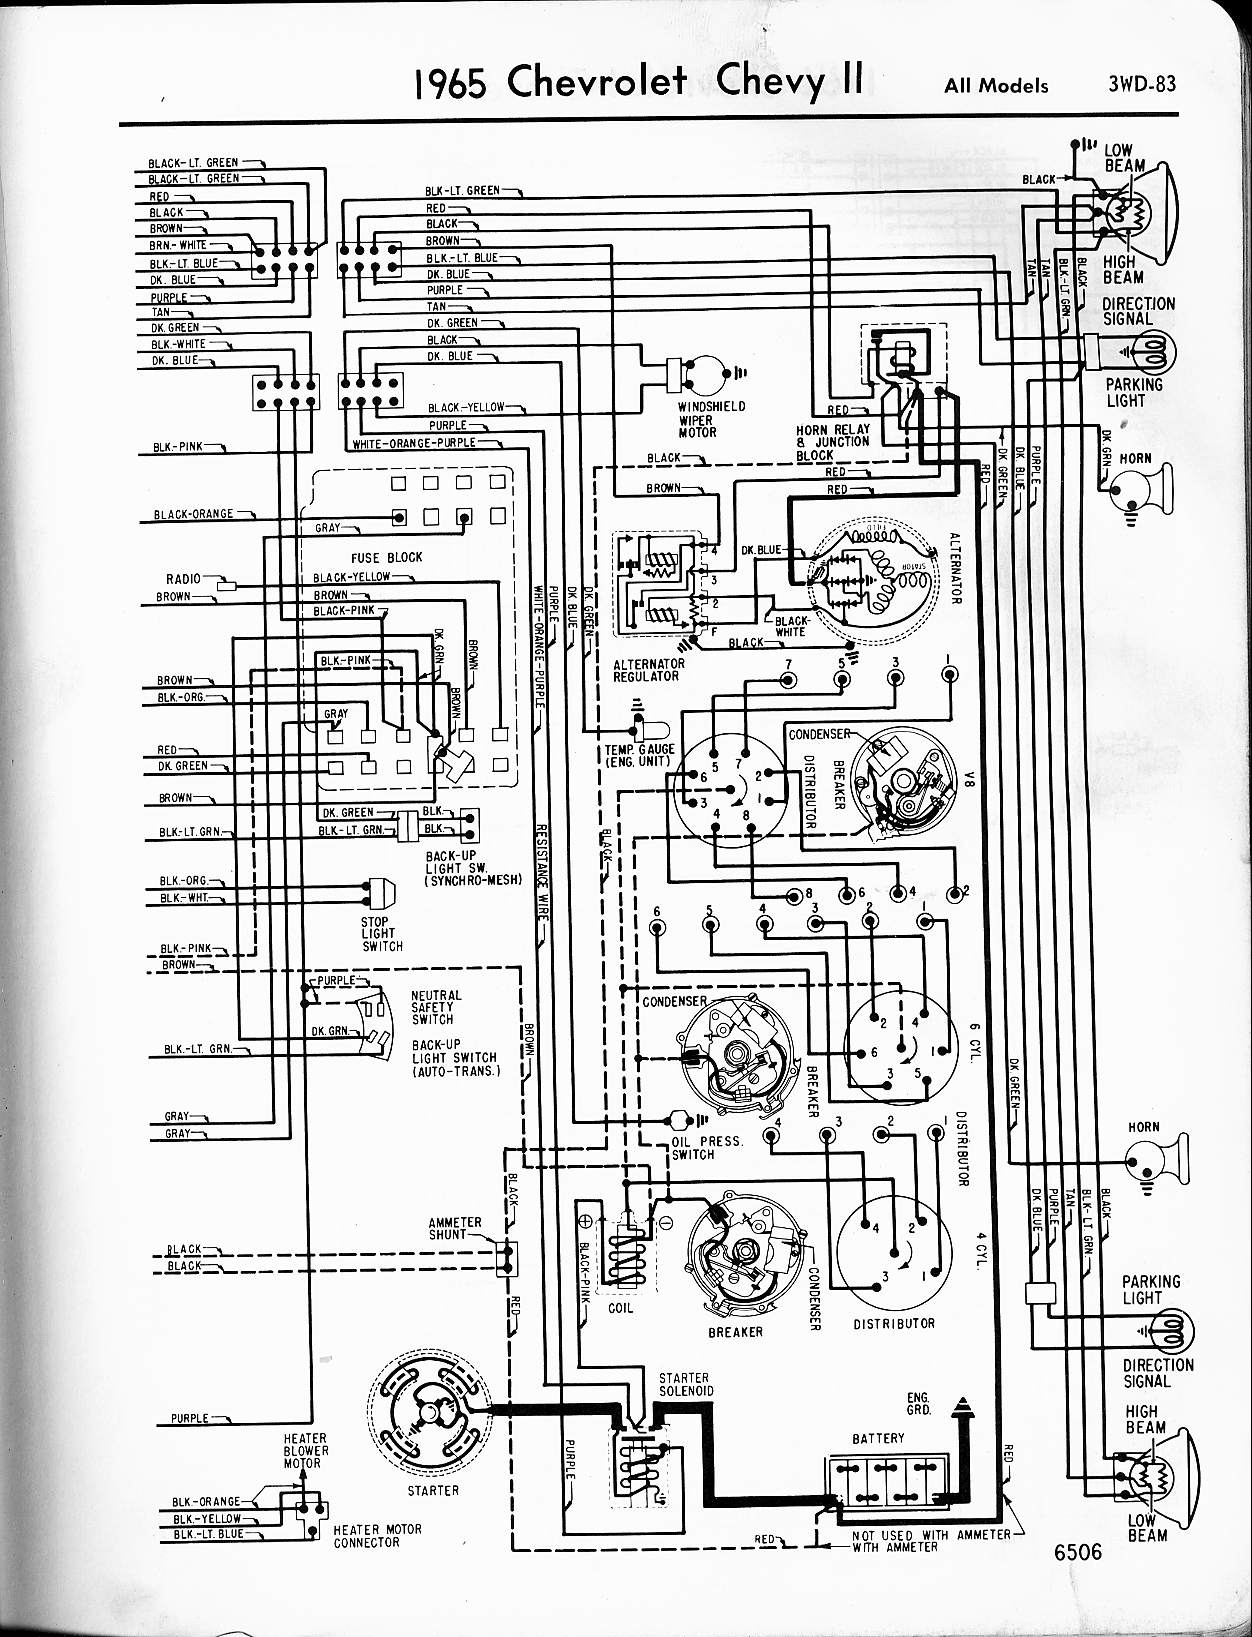 Chevy Diagrams Wiring Library 1954 International Trucks Diagram 1965 Ii Figure A B